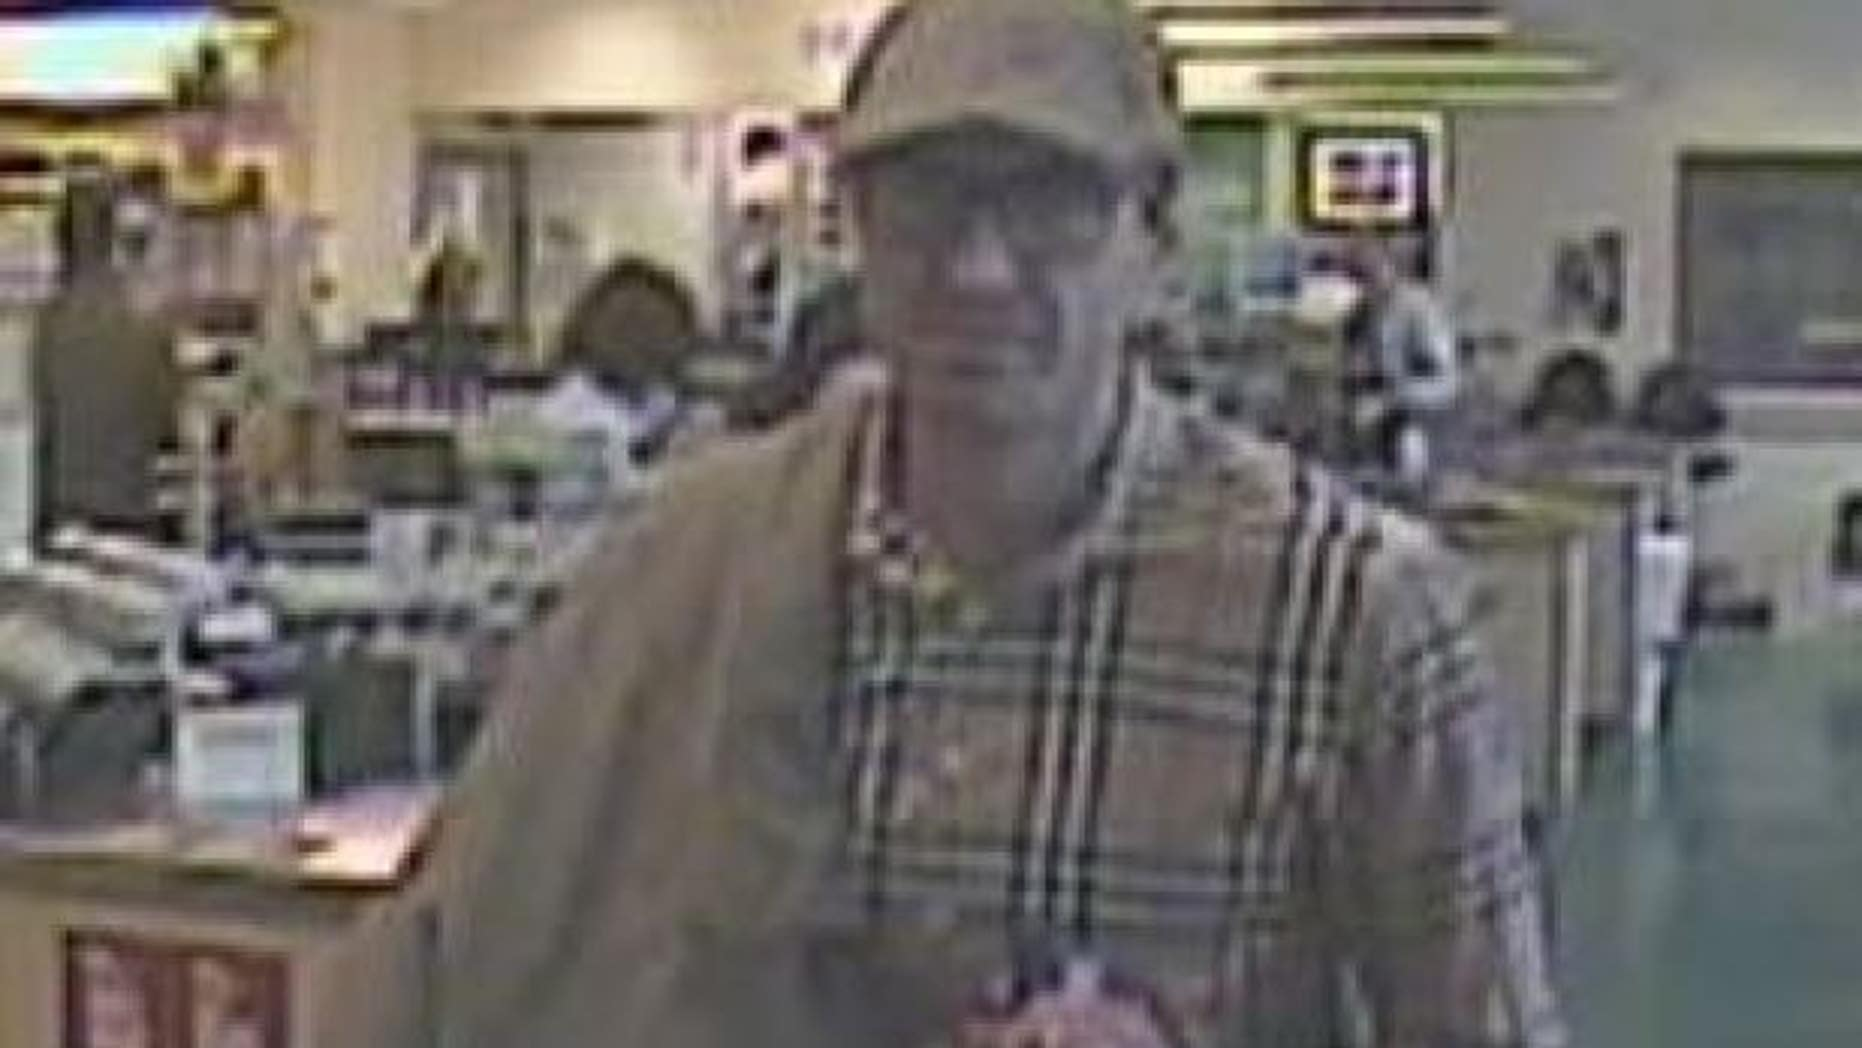 Subject: Photos of suspect and bottle of scotch On 2013-04-23, at 10:14 AM, Colby, Scott wrote: Security camera image of suspect in investigation into theft of $26,000 bottle of scotch from the LCBO at 2 Cooper St. Scott Colby 